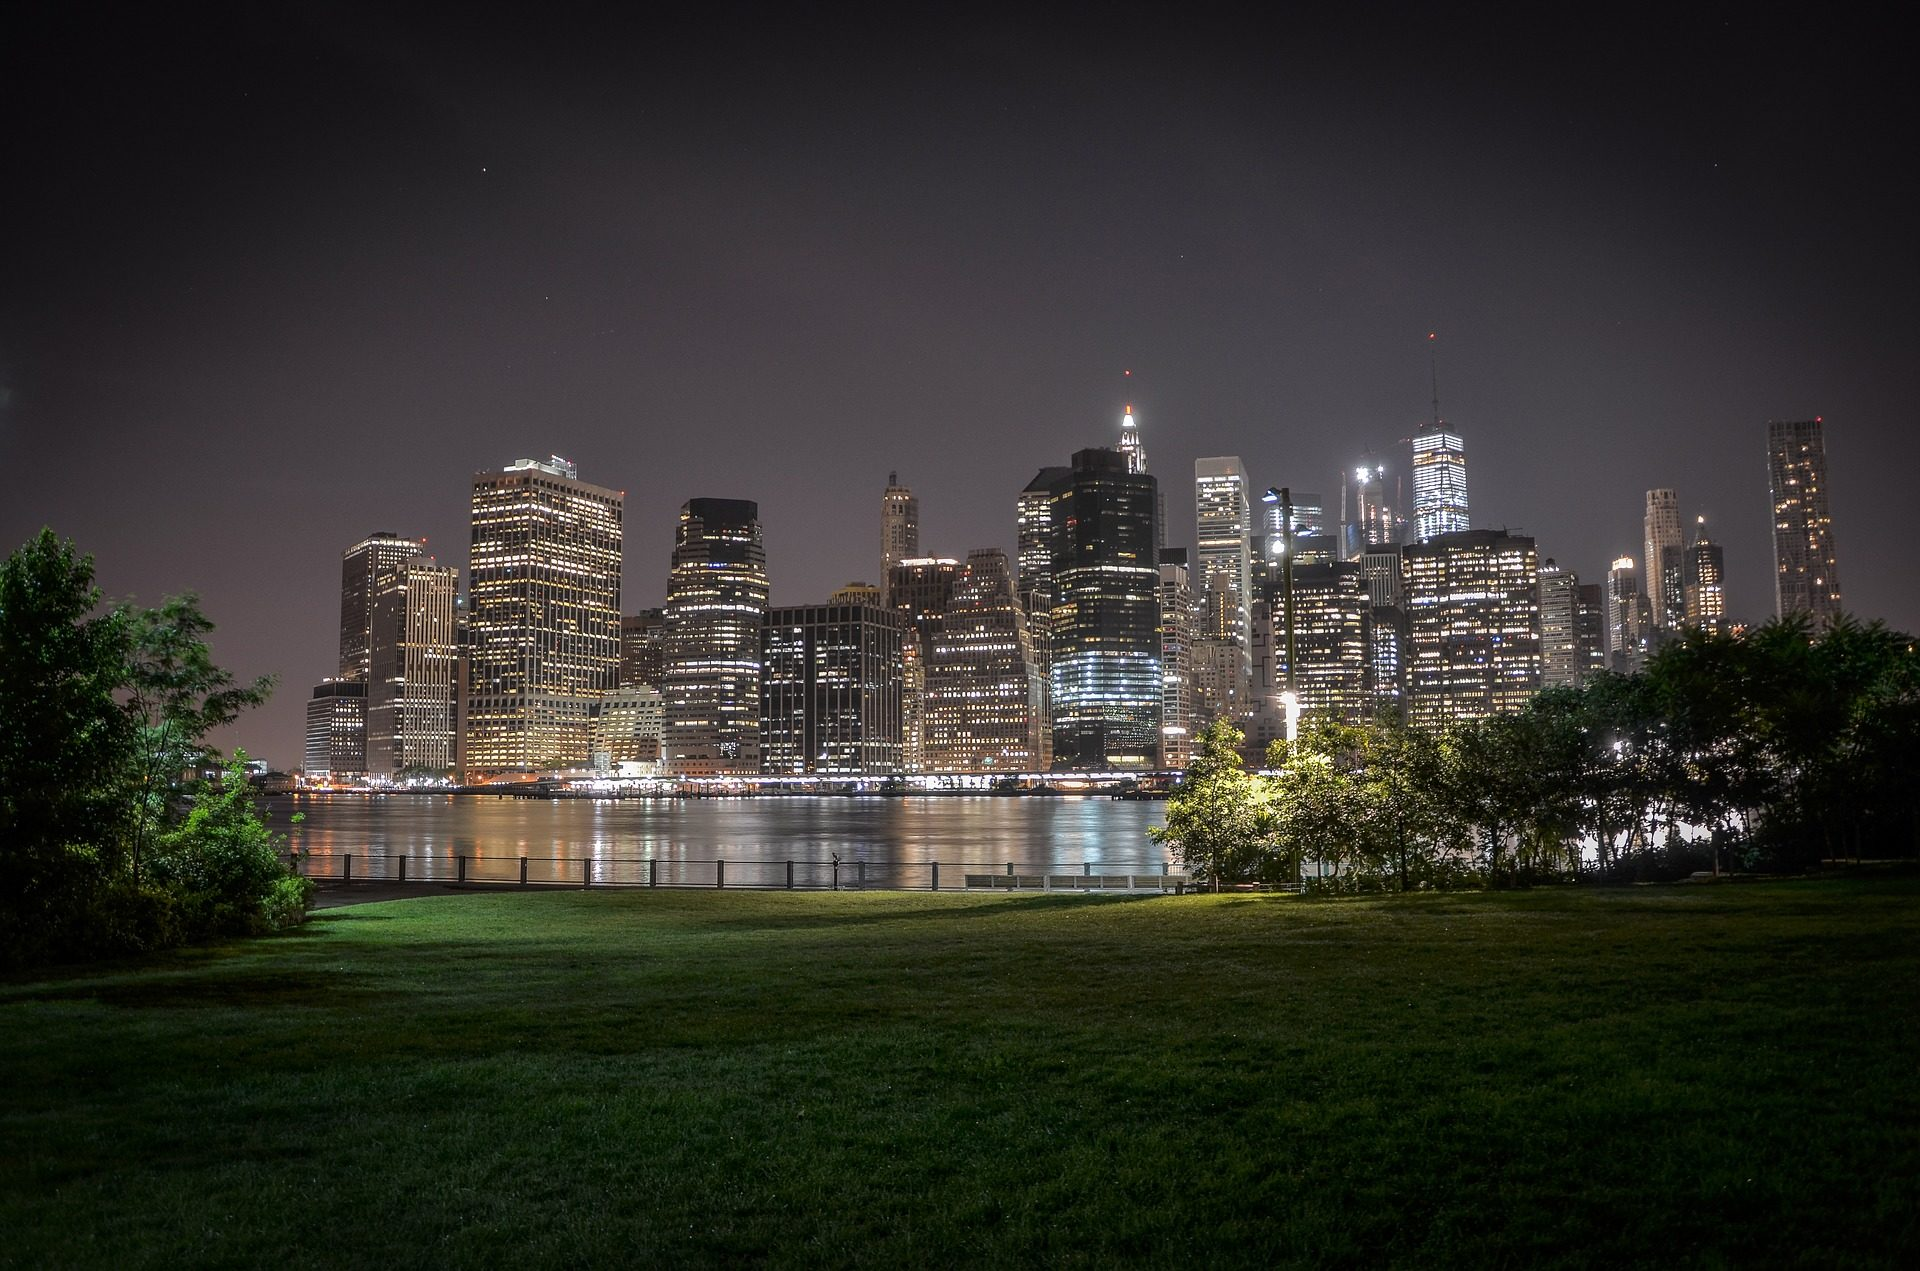 Park, Stadt, Skyline, Wolkenkratzer, Brooklyn - Wallpaper HD - Prof.-falken.com